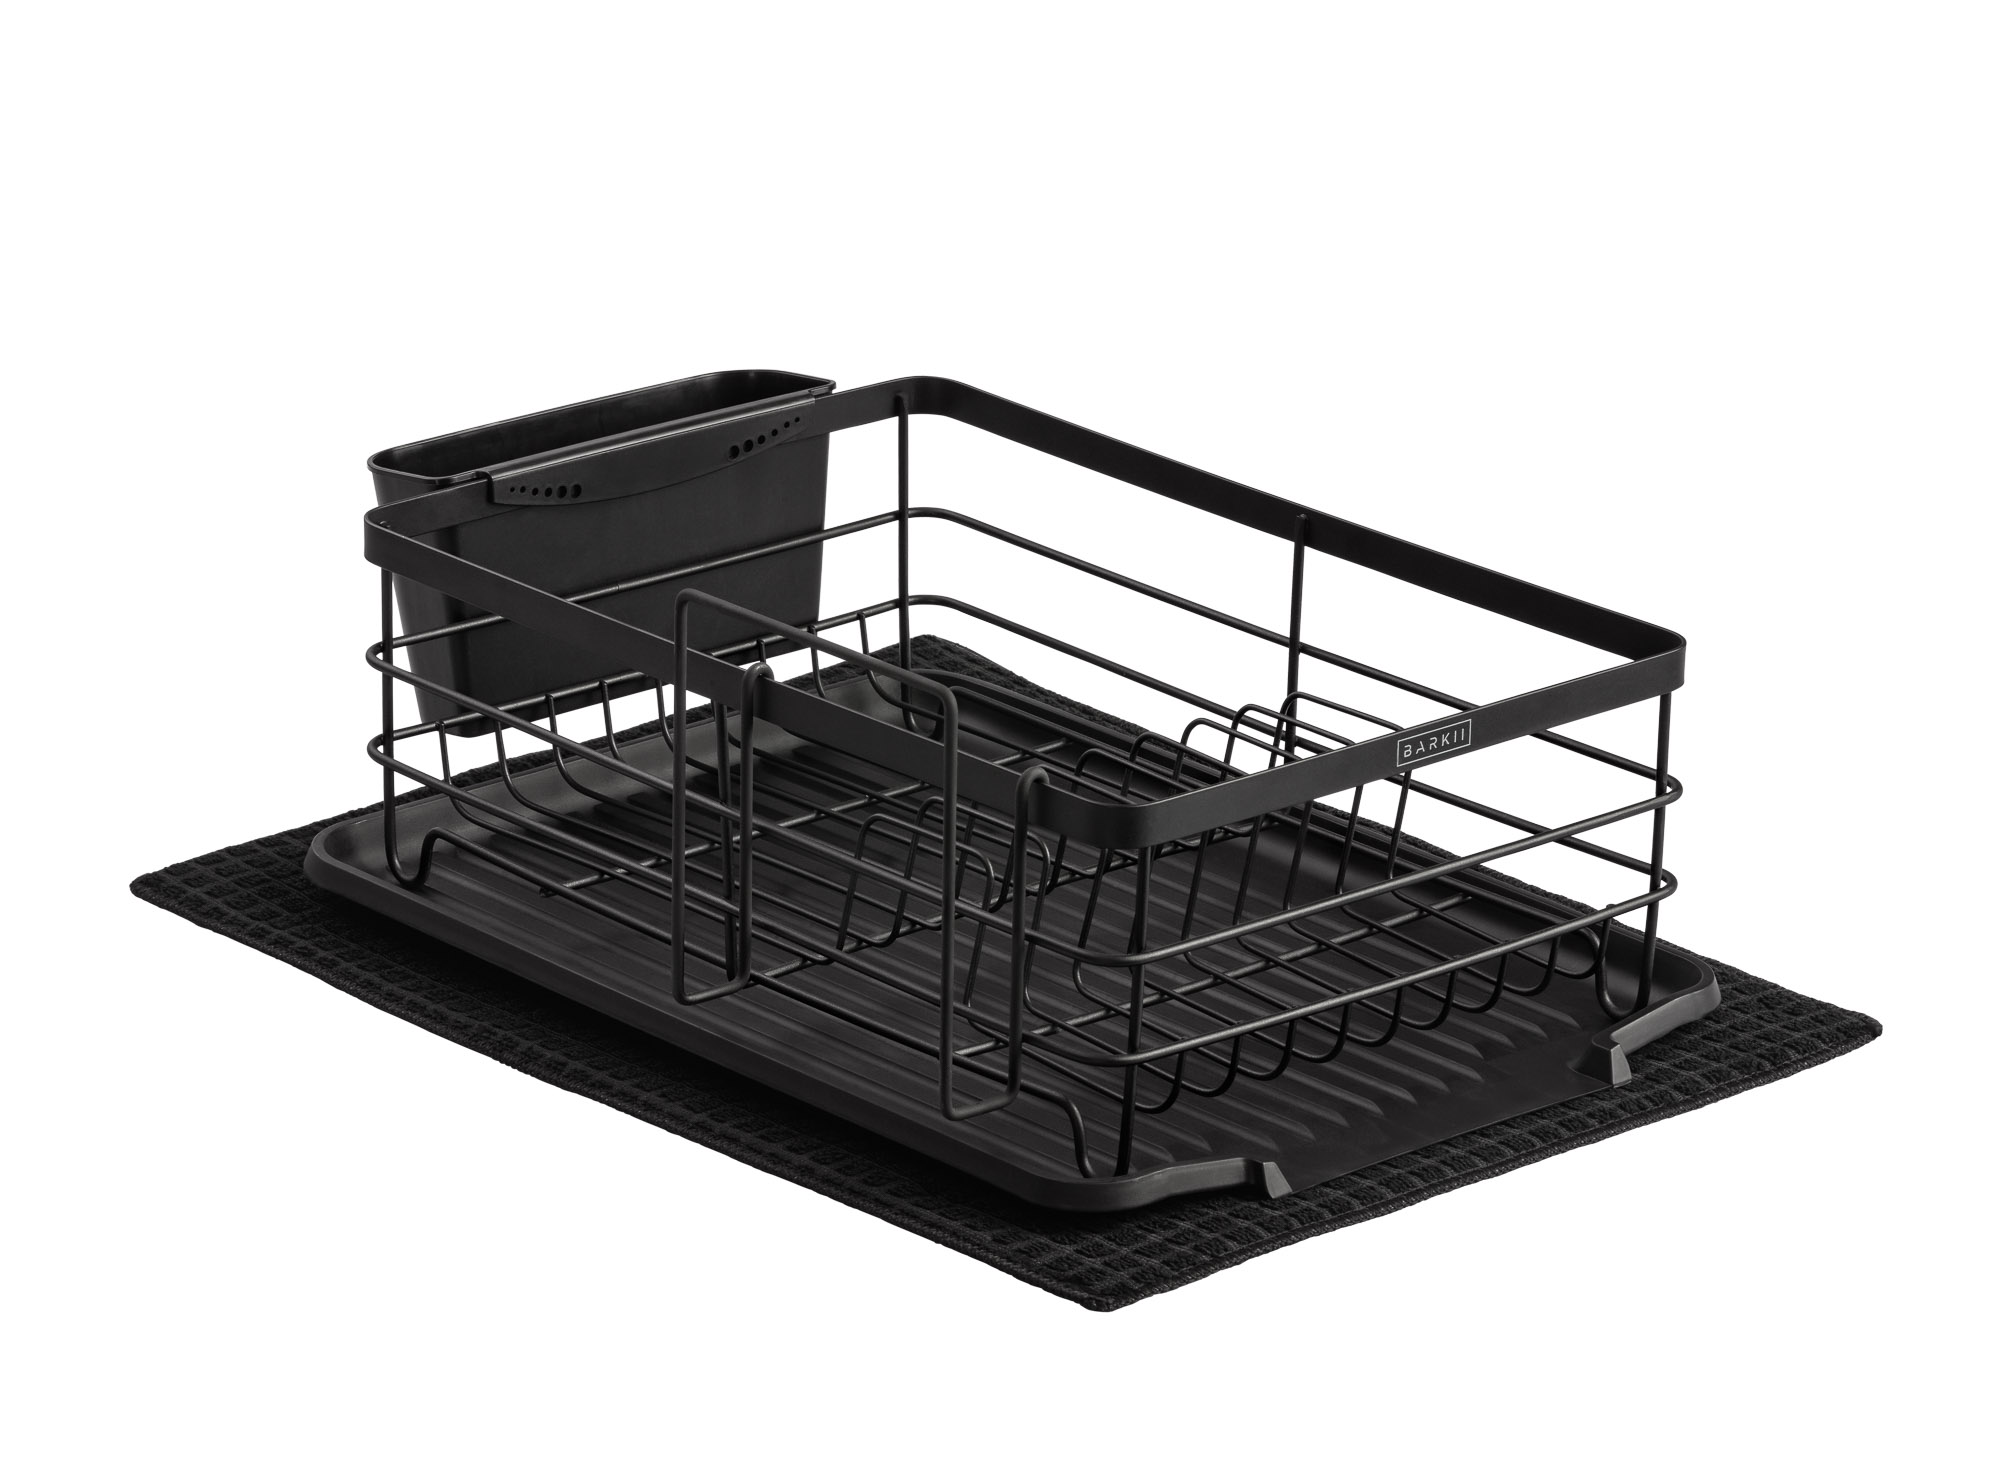 Dish Rack Barkii All parts - Less large cutlery container